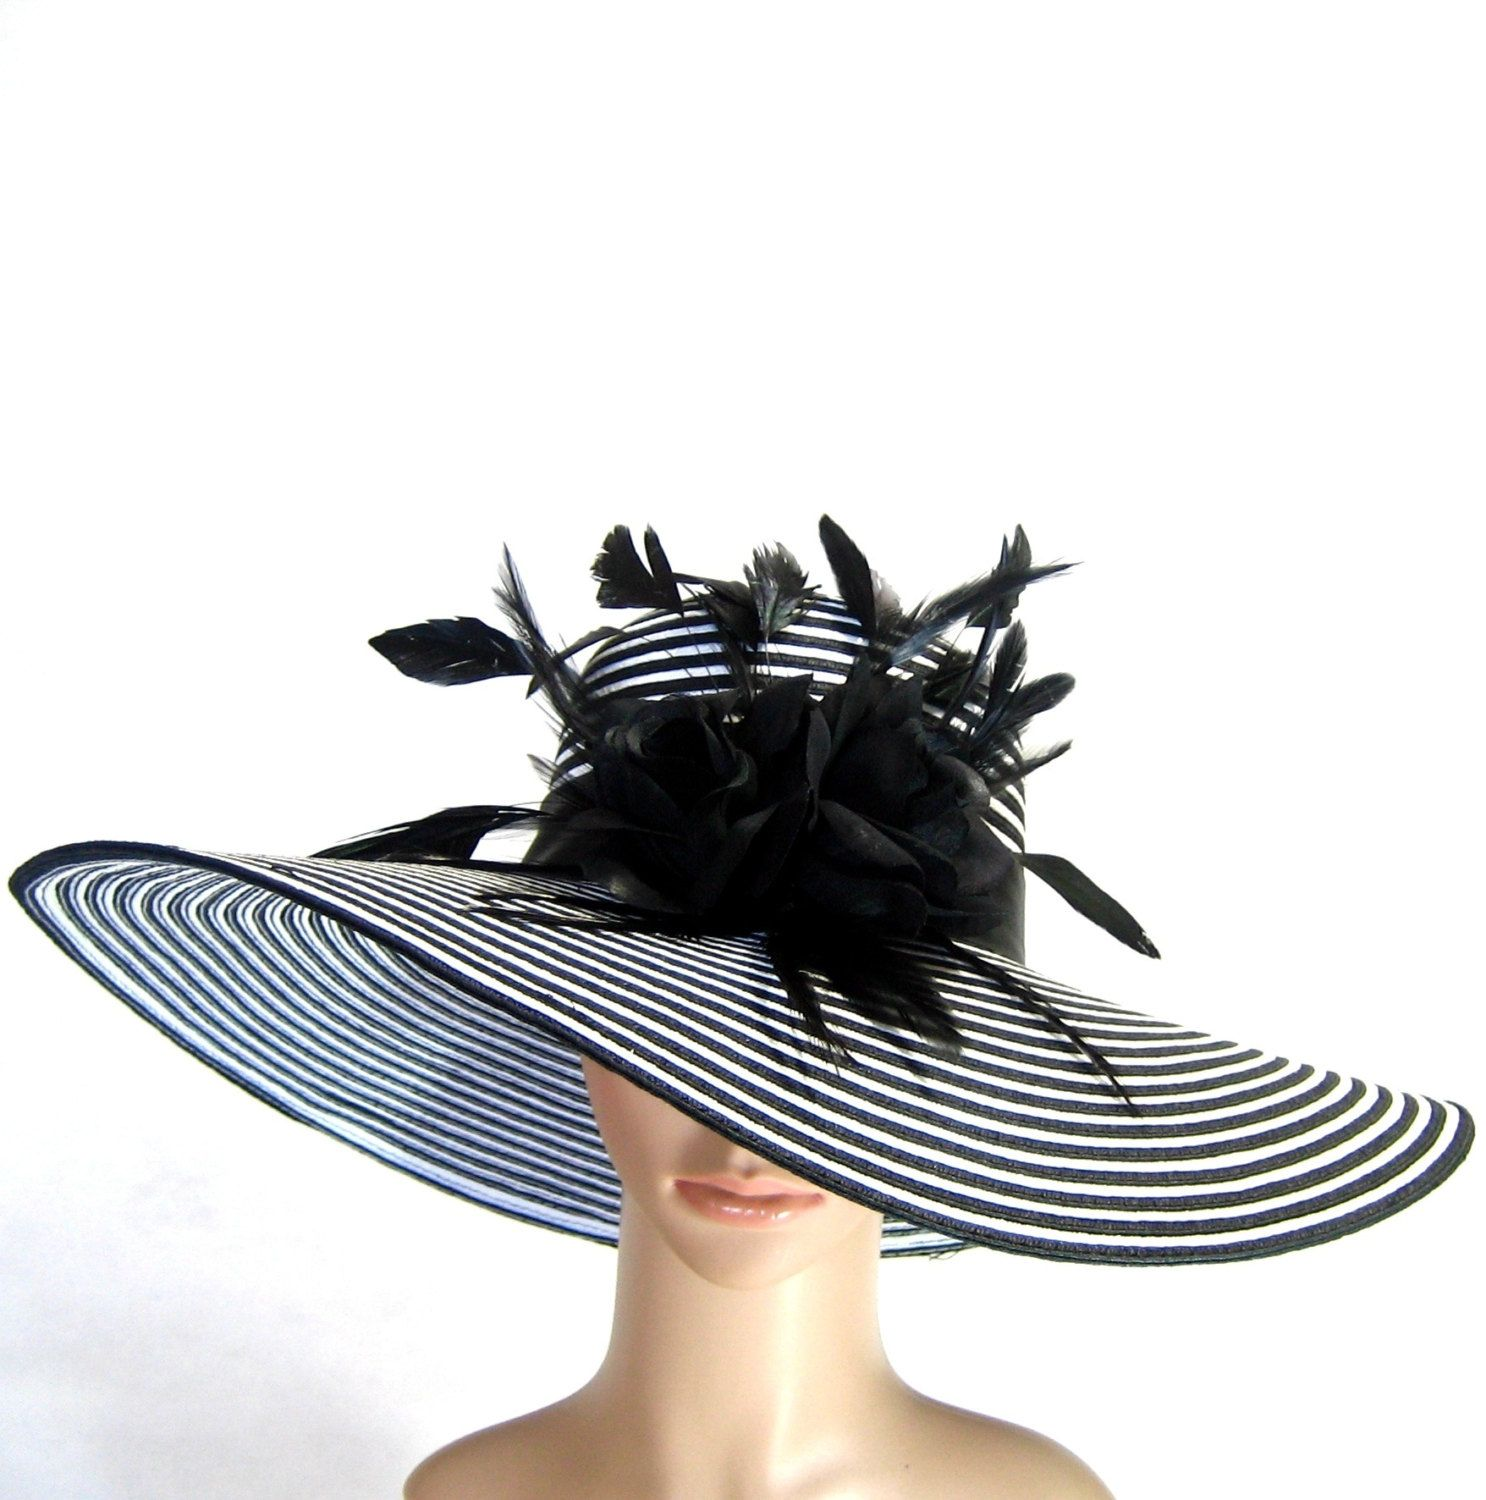 BLACK and WHITE Derby Hat Kentucky Derby Hat Dress Hat Church Hat Wide Brim  Hat Dress Hat Bridal Wedding Tea Party Ascot Fashion Sun Hat.  69.97 321667ea3a67